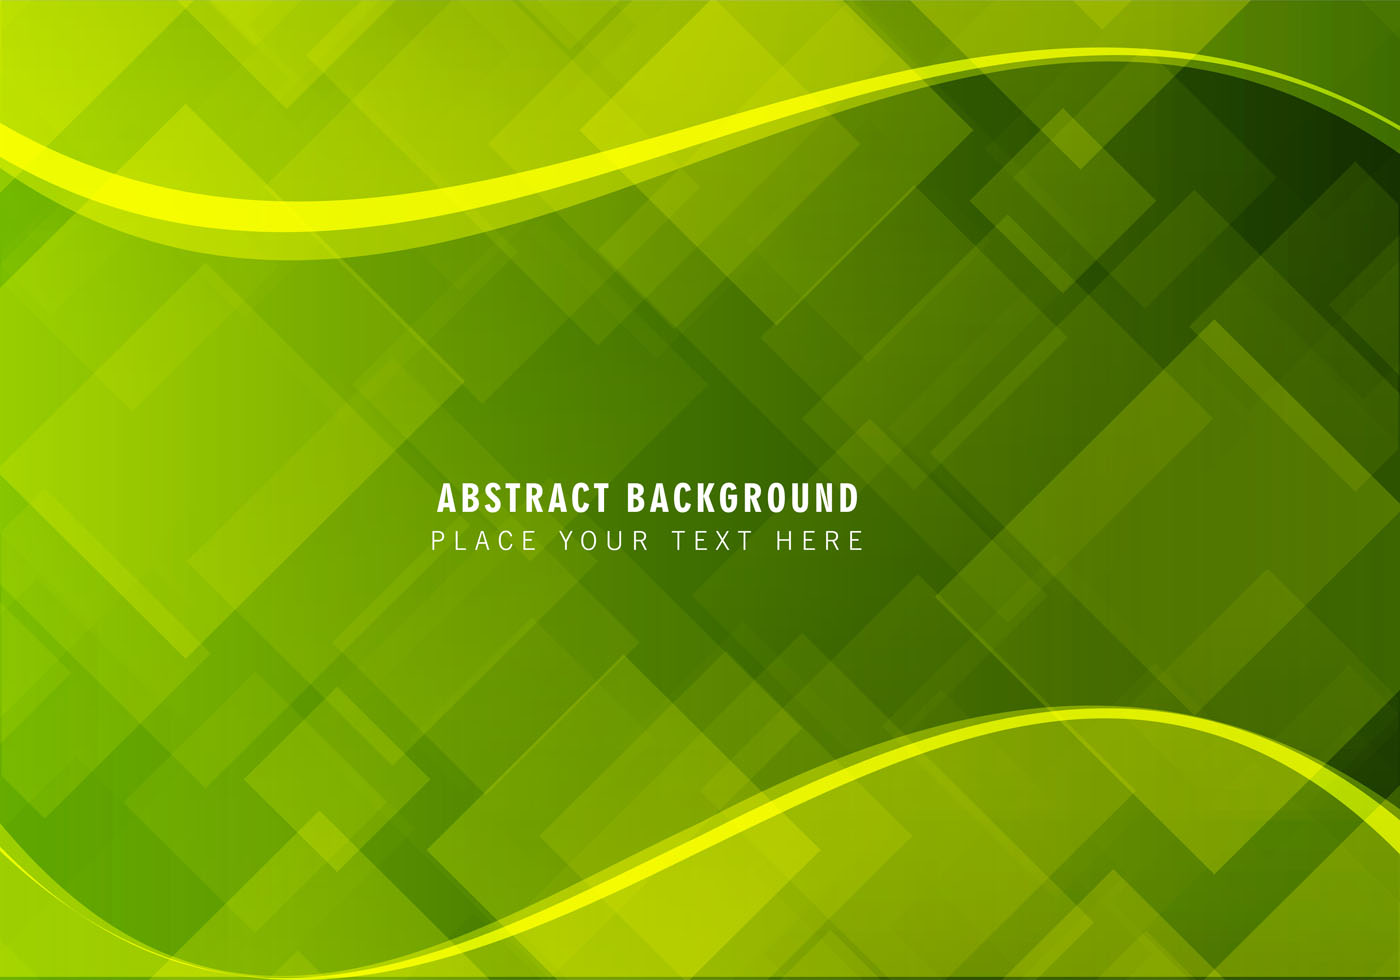 Green Background Free Vector Art - (23493 Free Downloads)